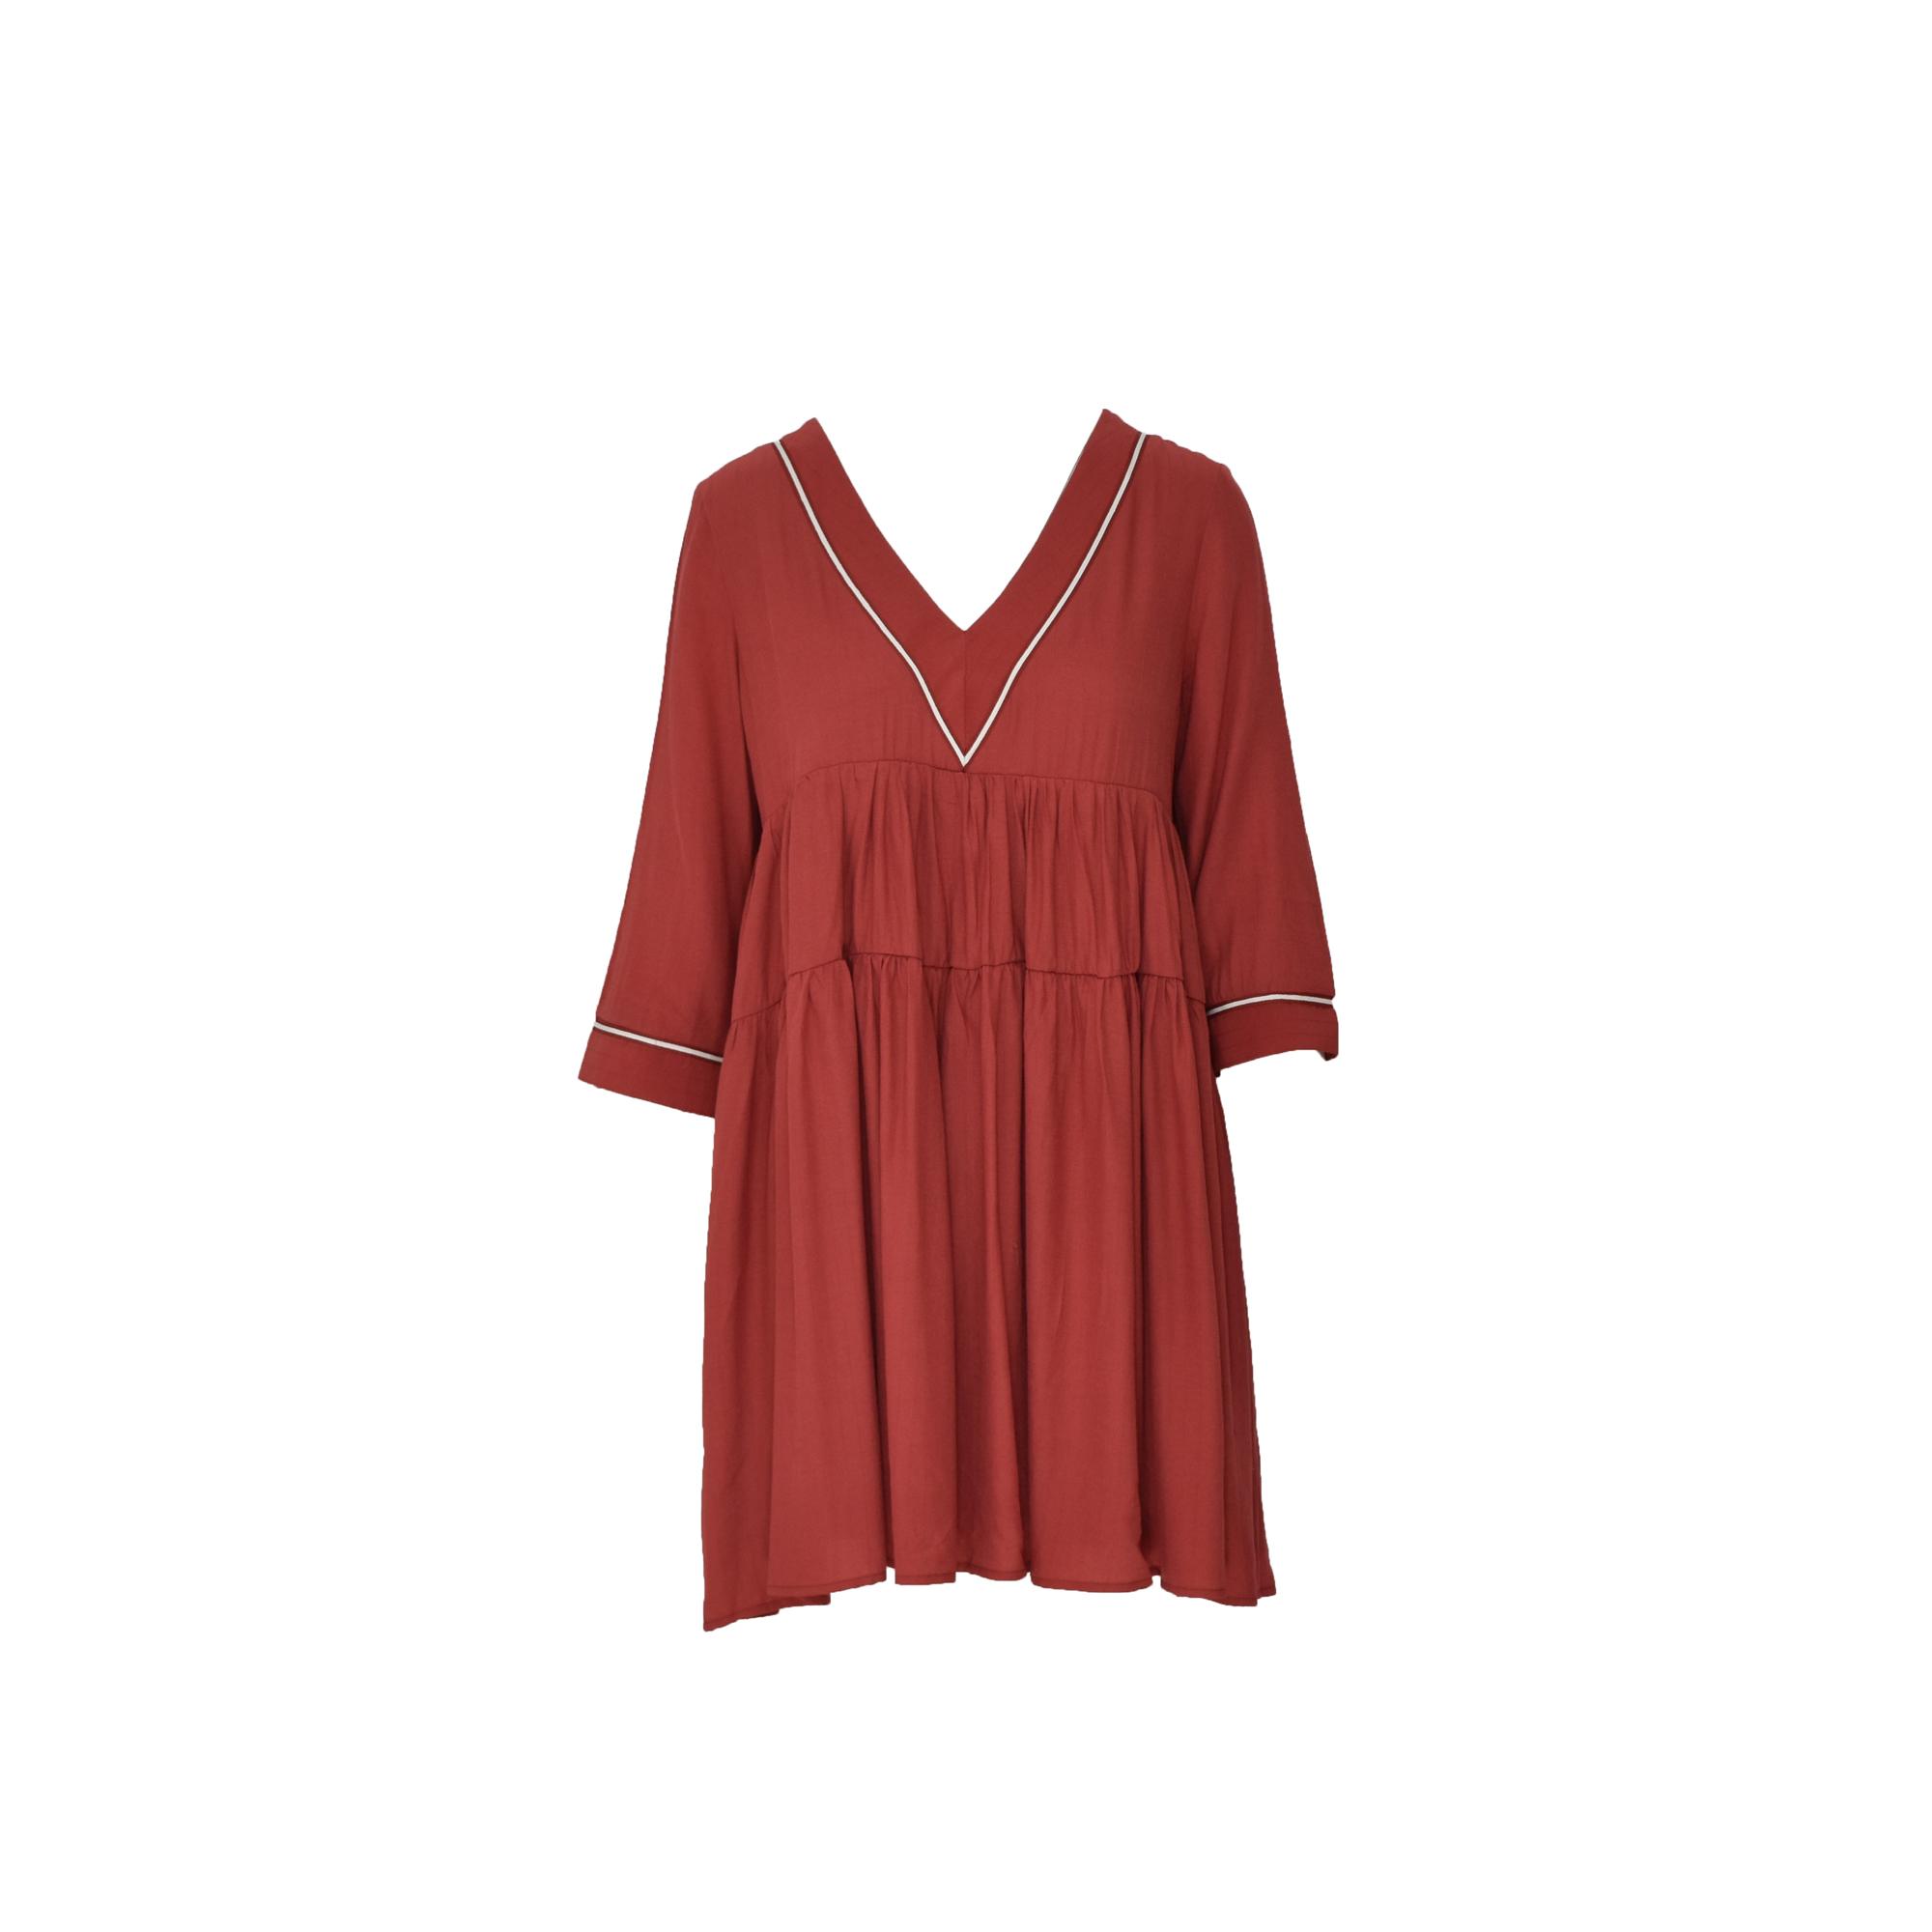 GRACE & MILA SAMY ROBE - S19SAMY RED